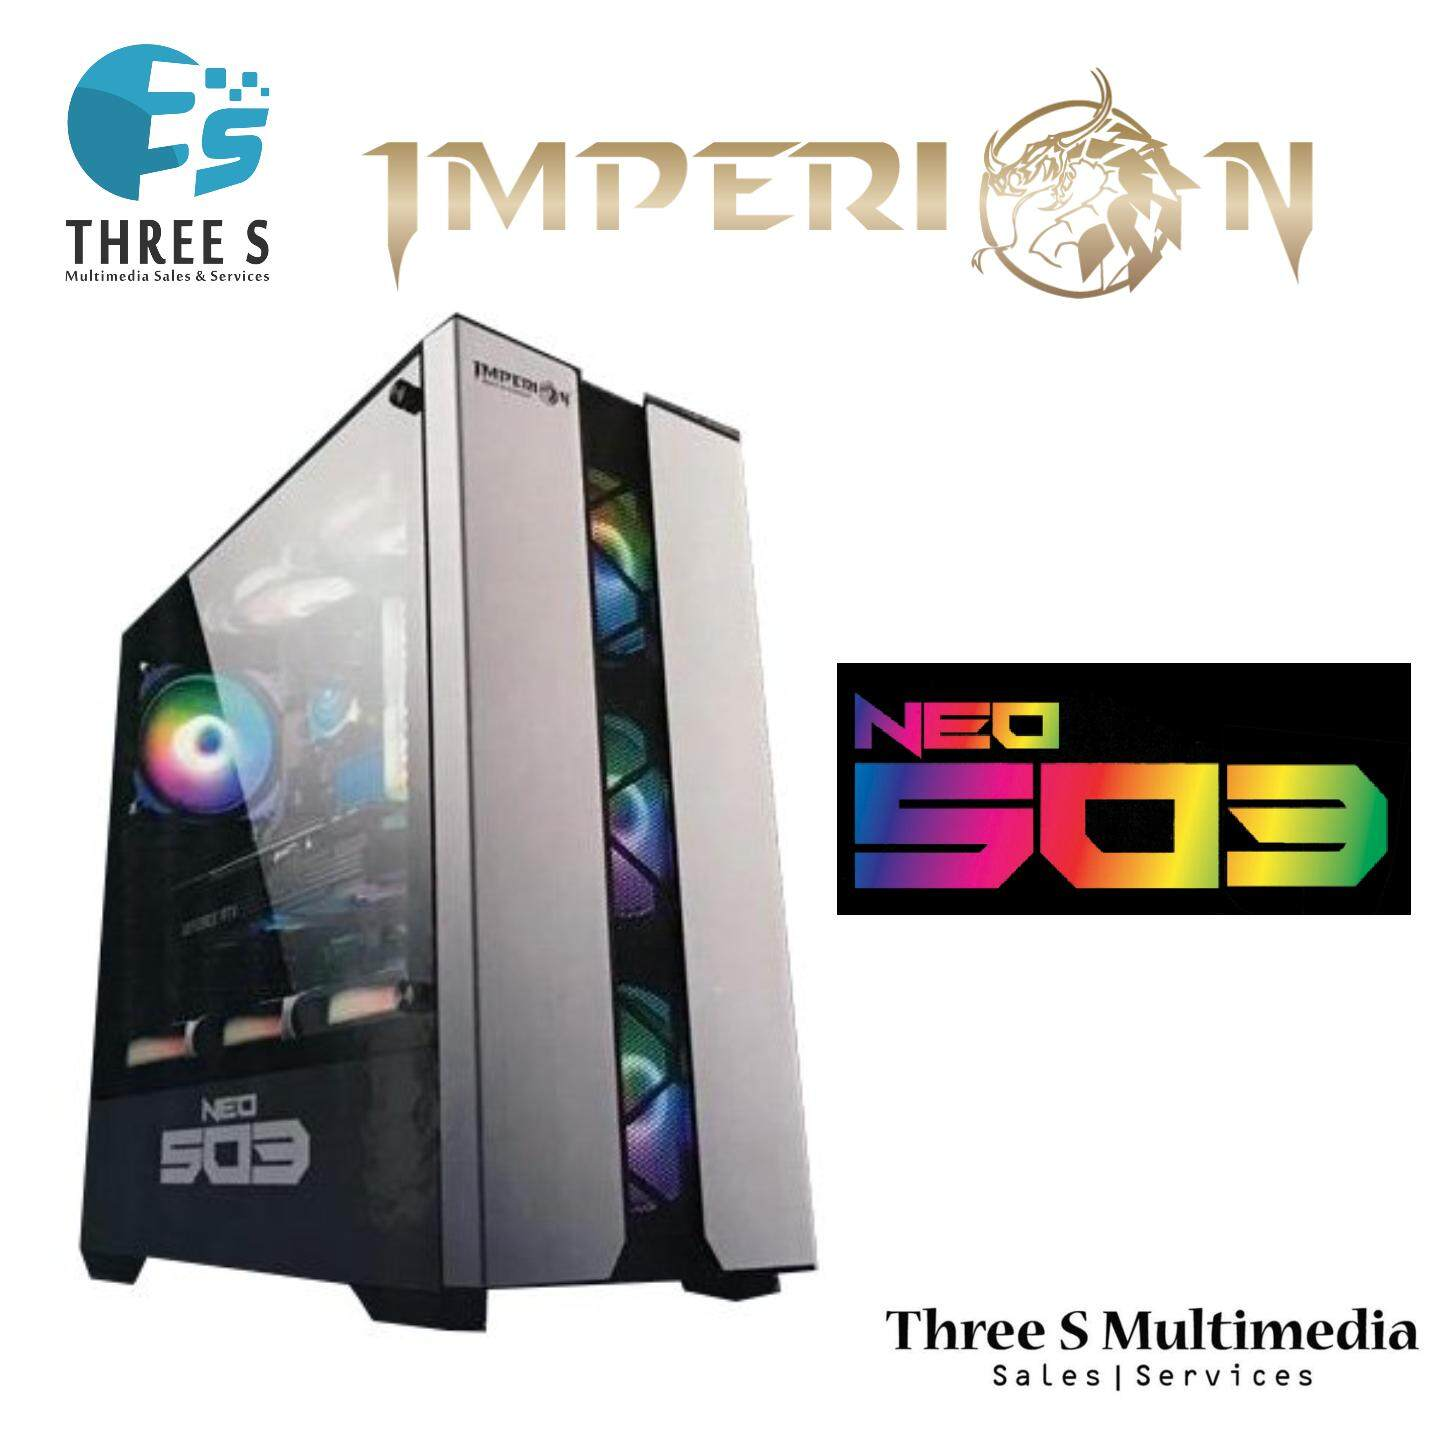 IMPERON NEO 503 COMPUTER GAMING CASE RGB LIGHT